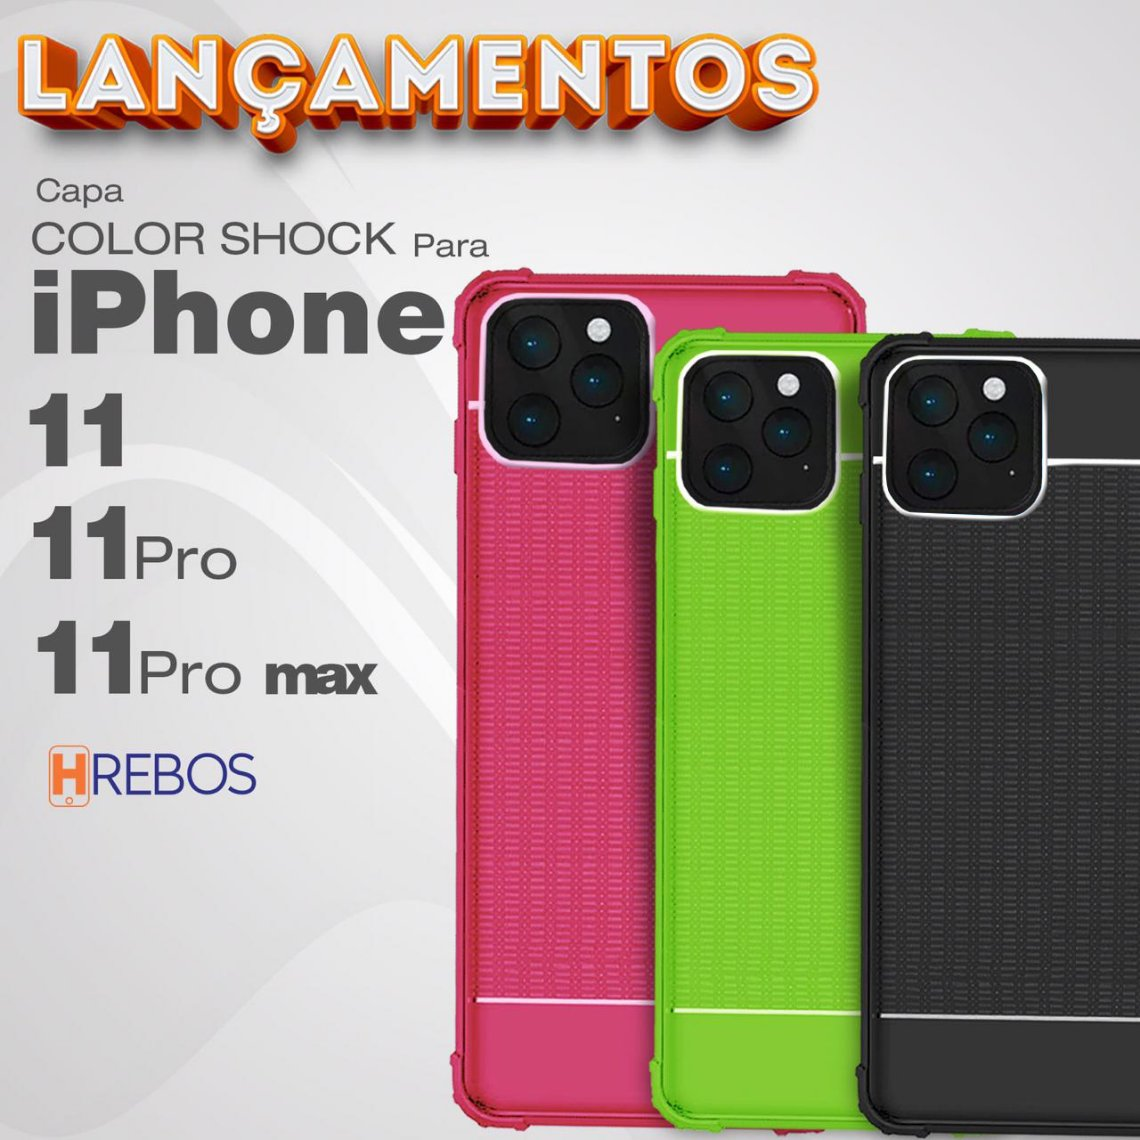 m-banner-iphone11_colorshock